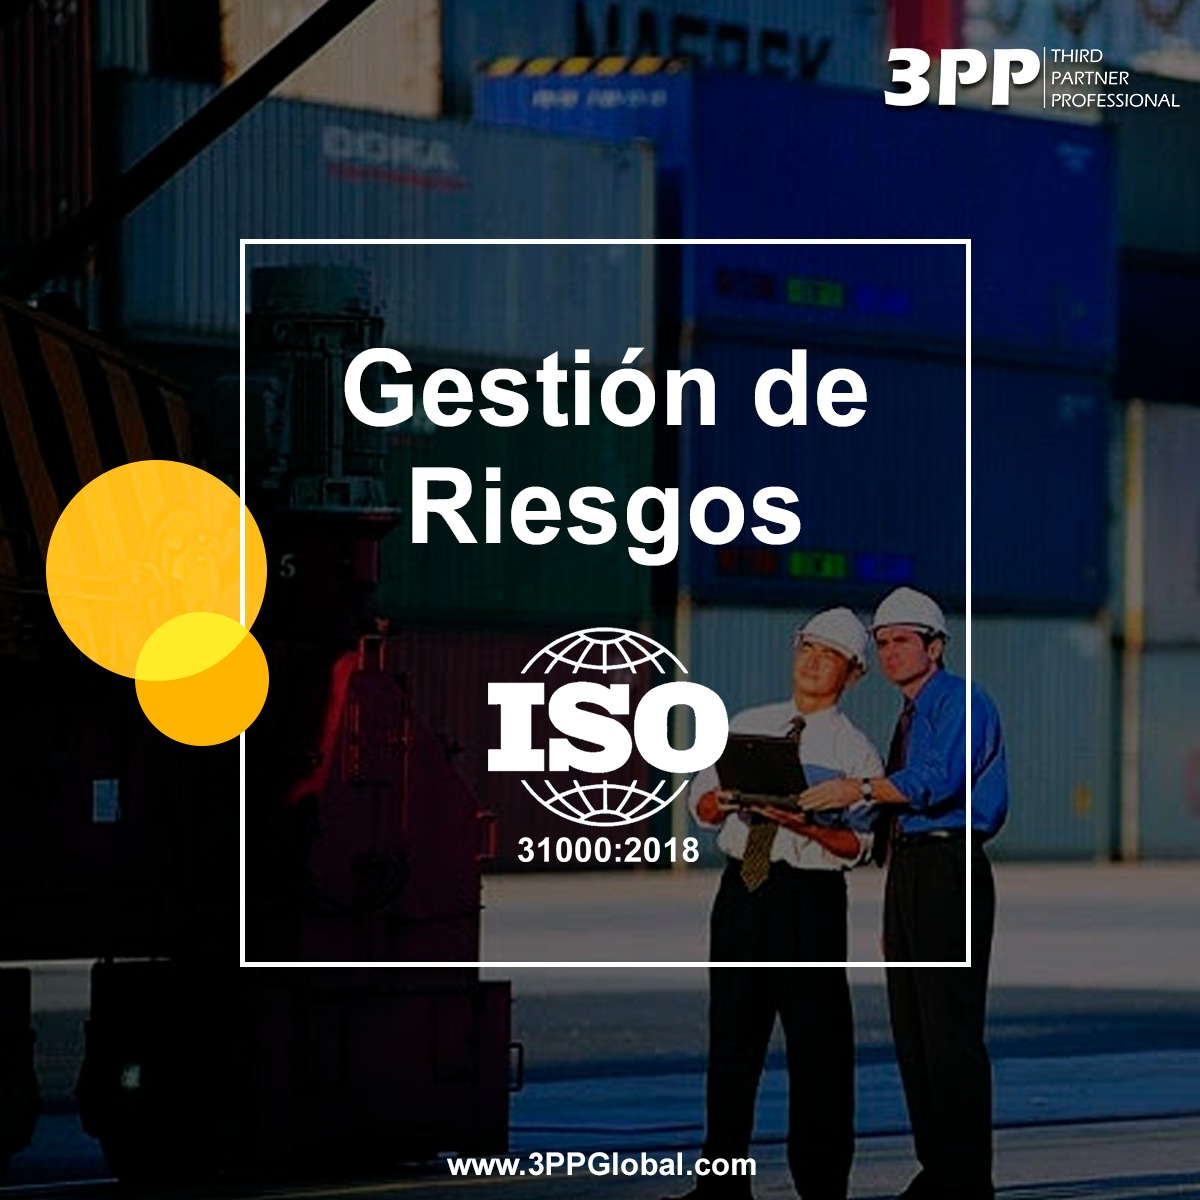 https://3ppglobal.com/servicio/taller-on-line-gestion-de-riesgos-iso-31000/